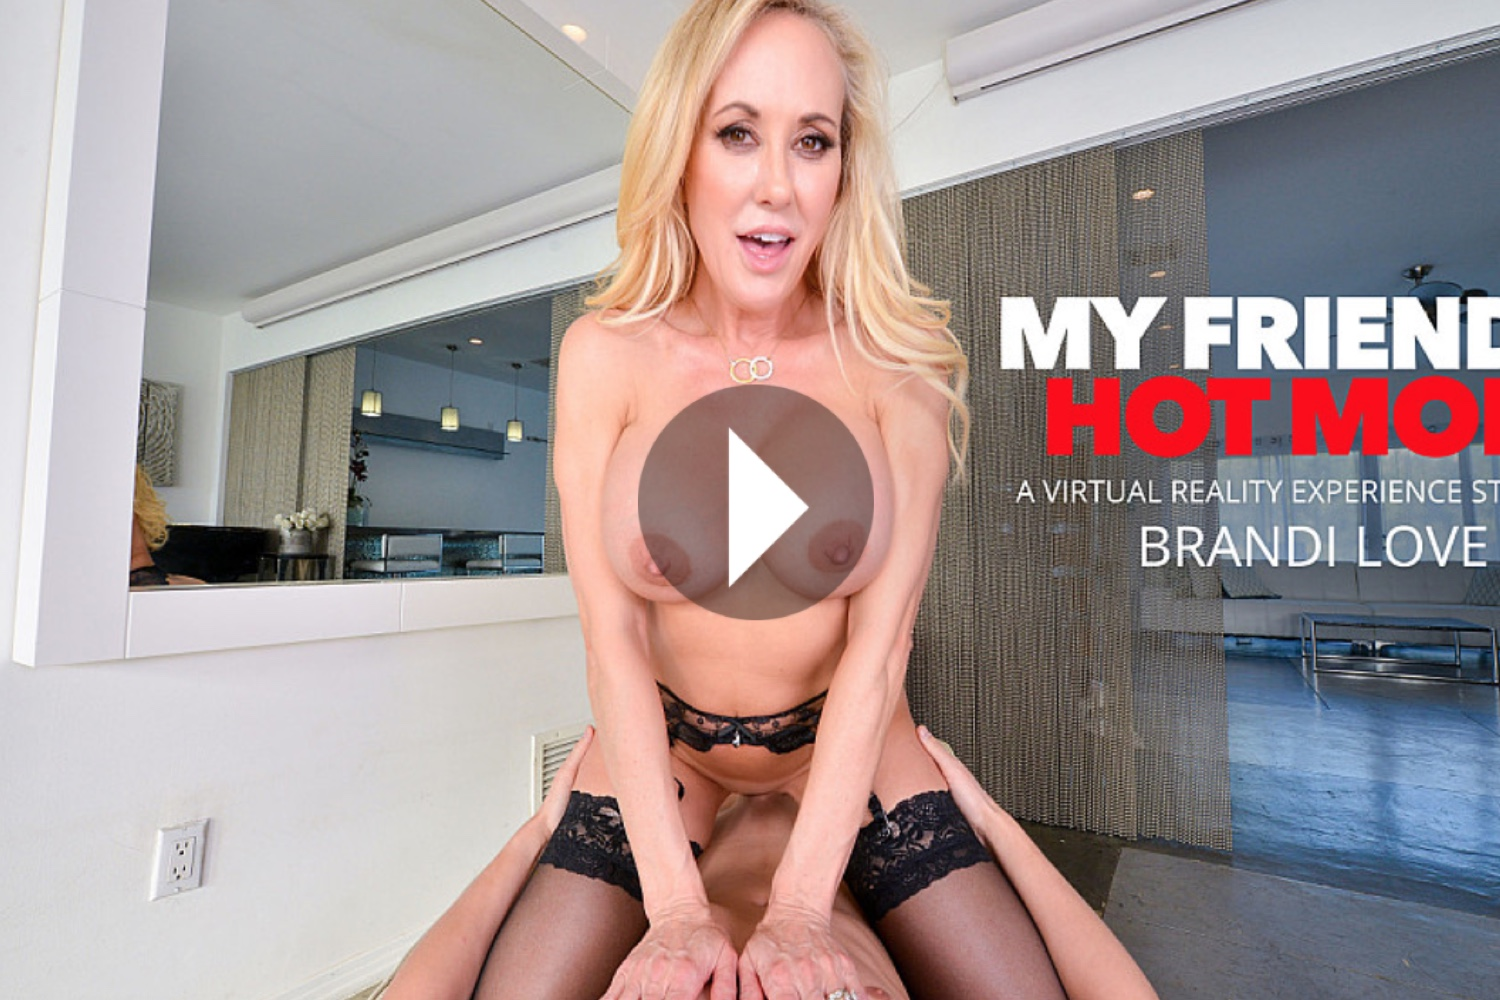 My Friend's Hot Mom - Brandi Love VR Porn - Brandi Love Virtual Reality Porn - Brandi Love Stockings - Brandi Love Legs - Brandi Love Feet